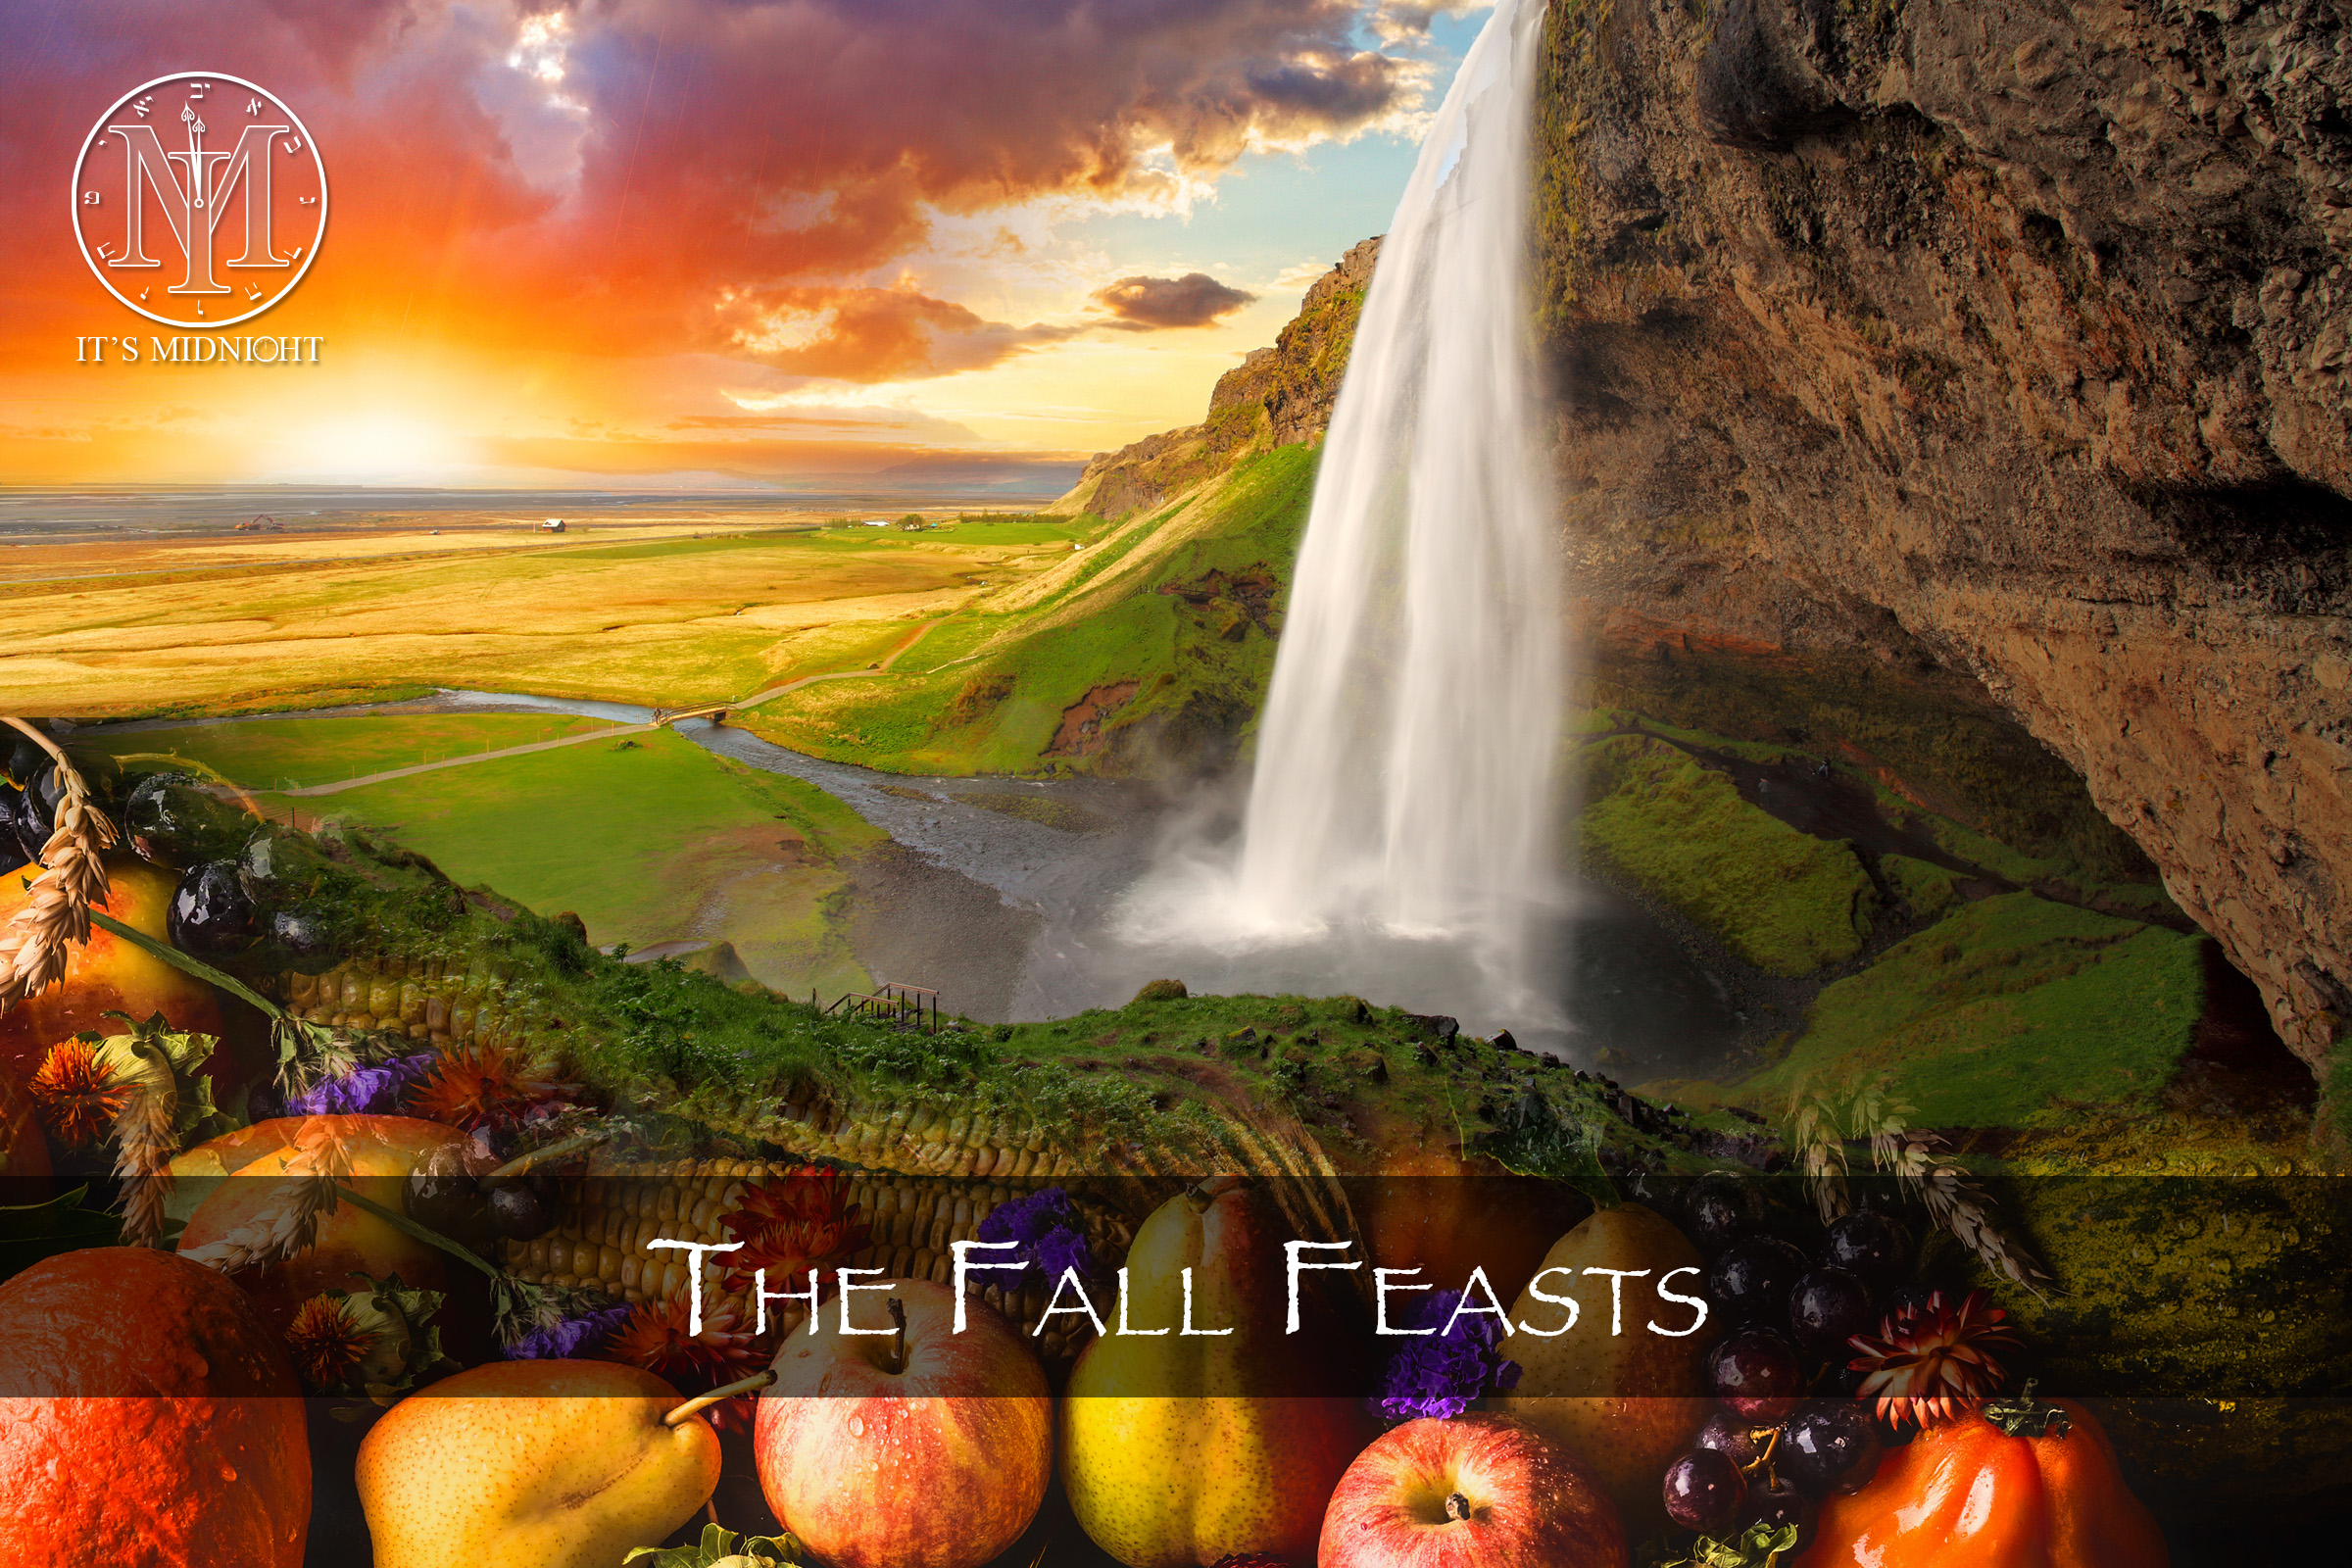 The Fall Feasts.jpg